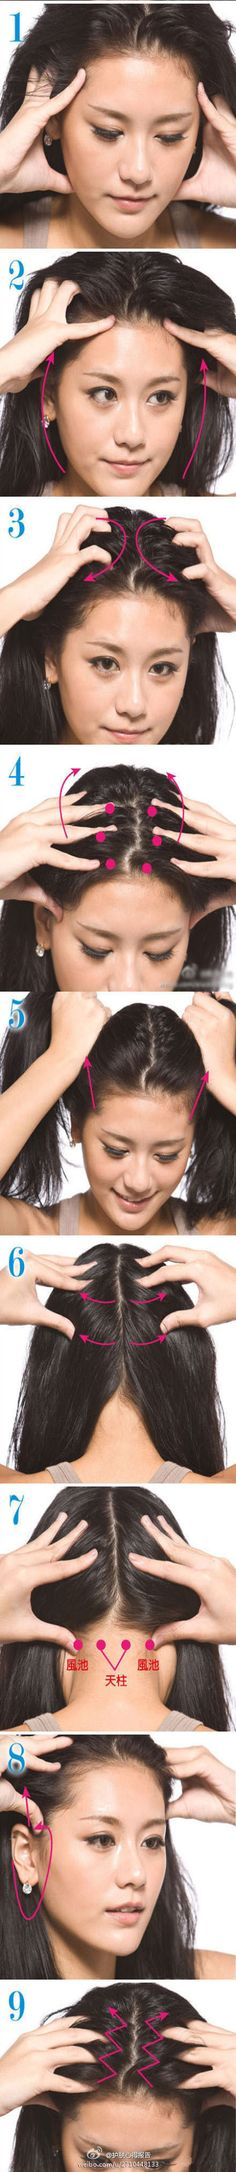 To help break-up all the dandruff and oil on your scalp, also helps your roots grow!